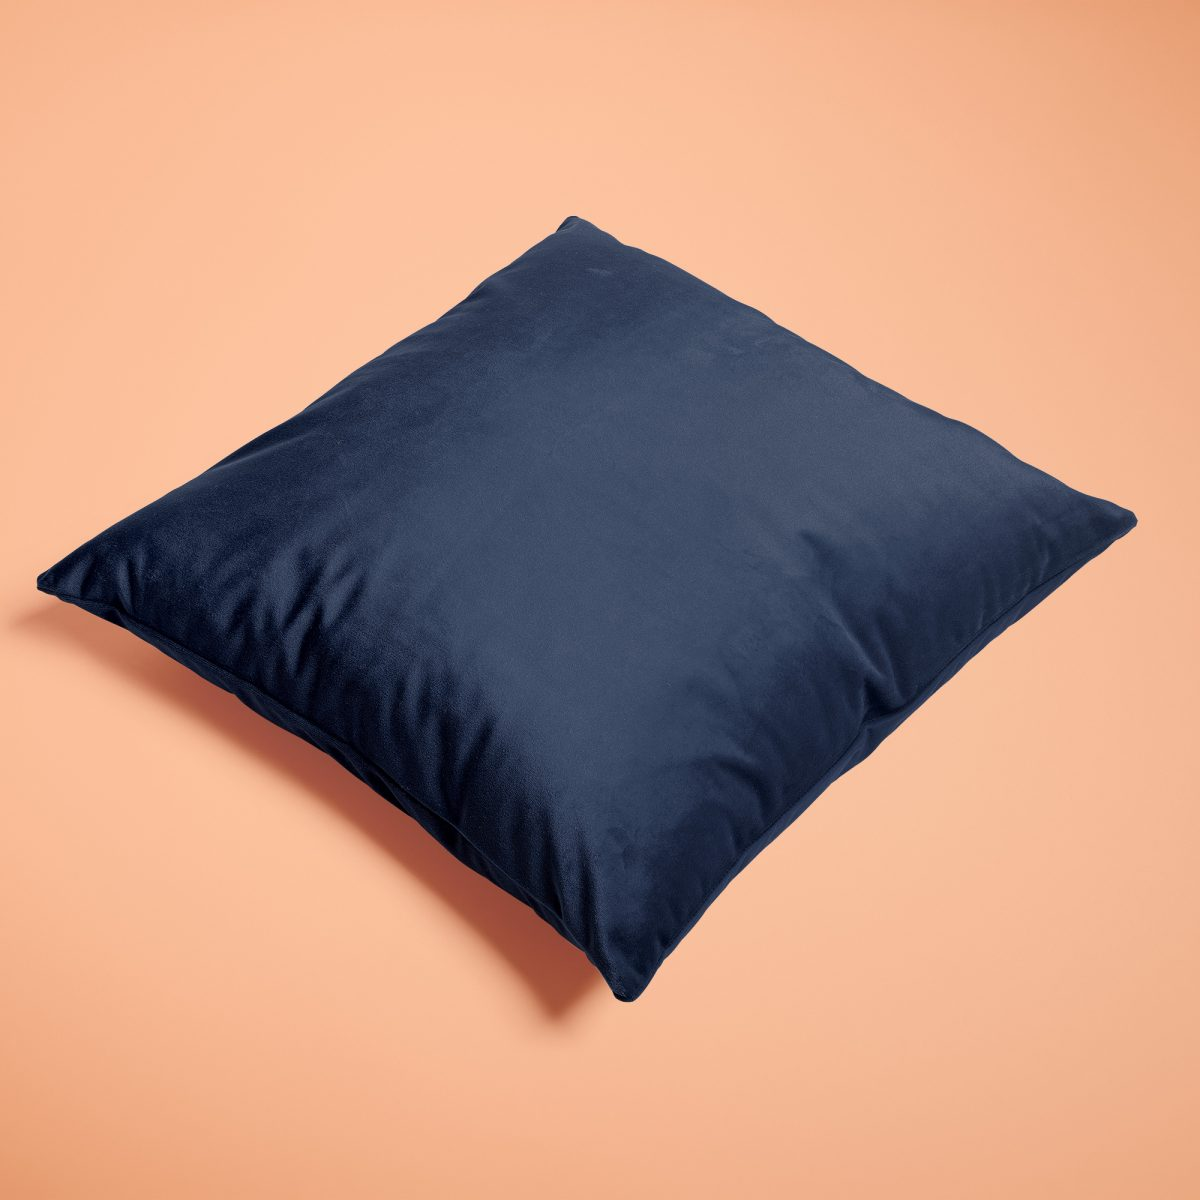 navy-blue-covers-of-the-rainbow-2